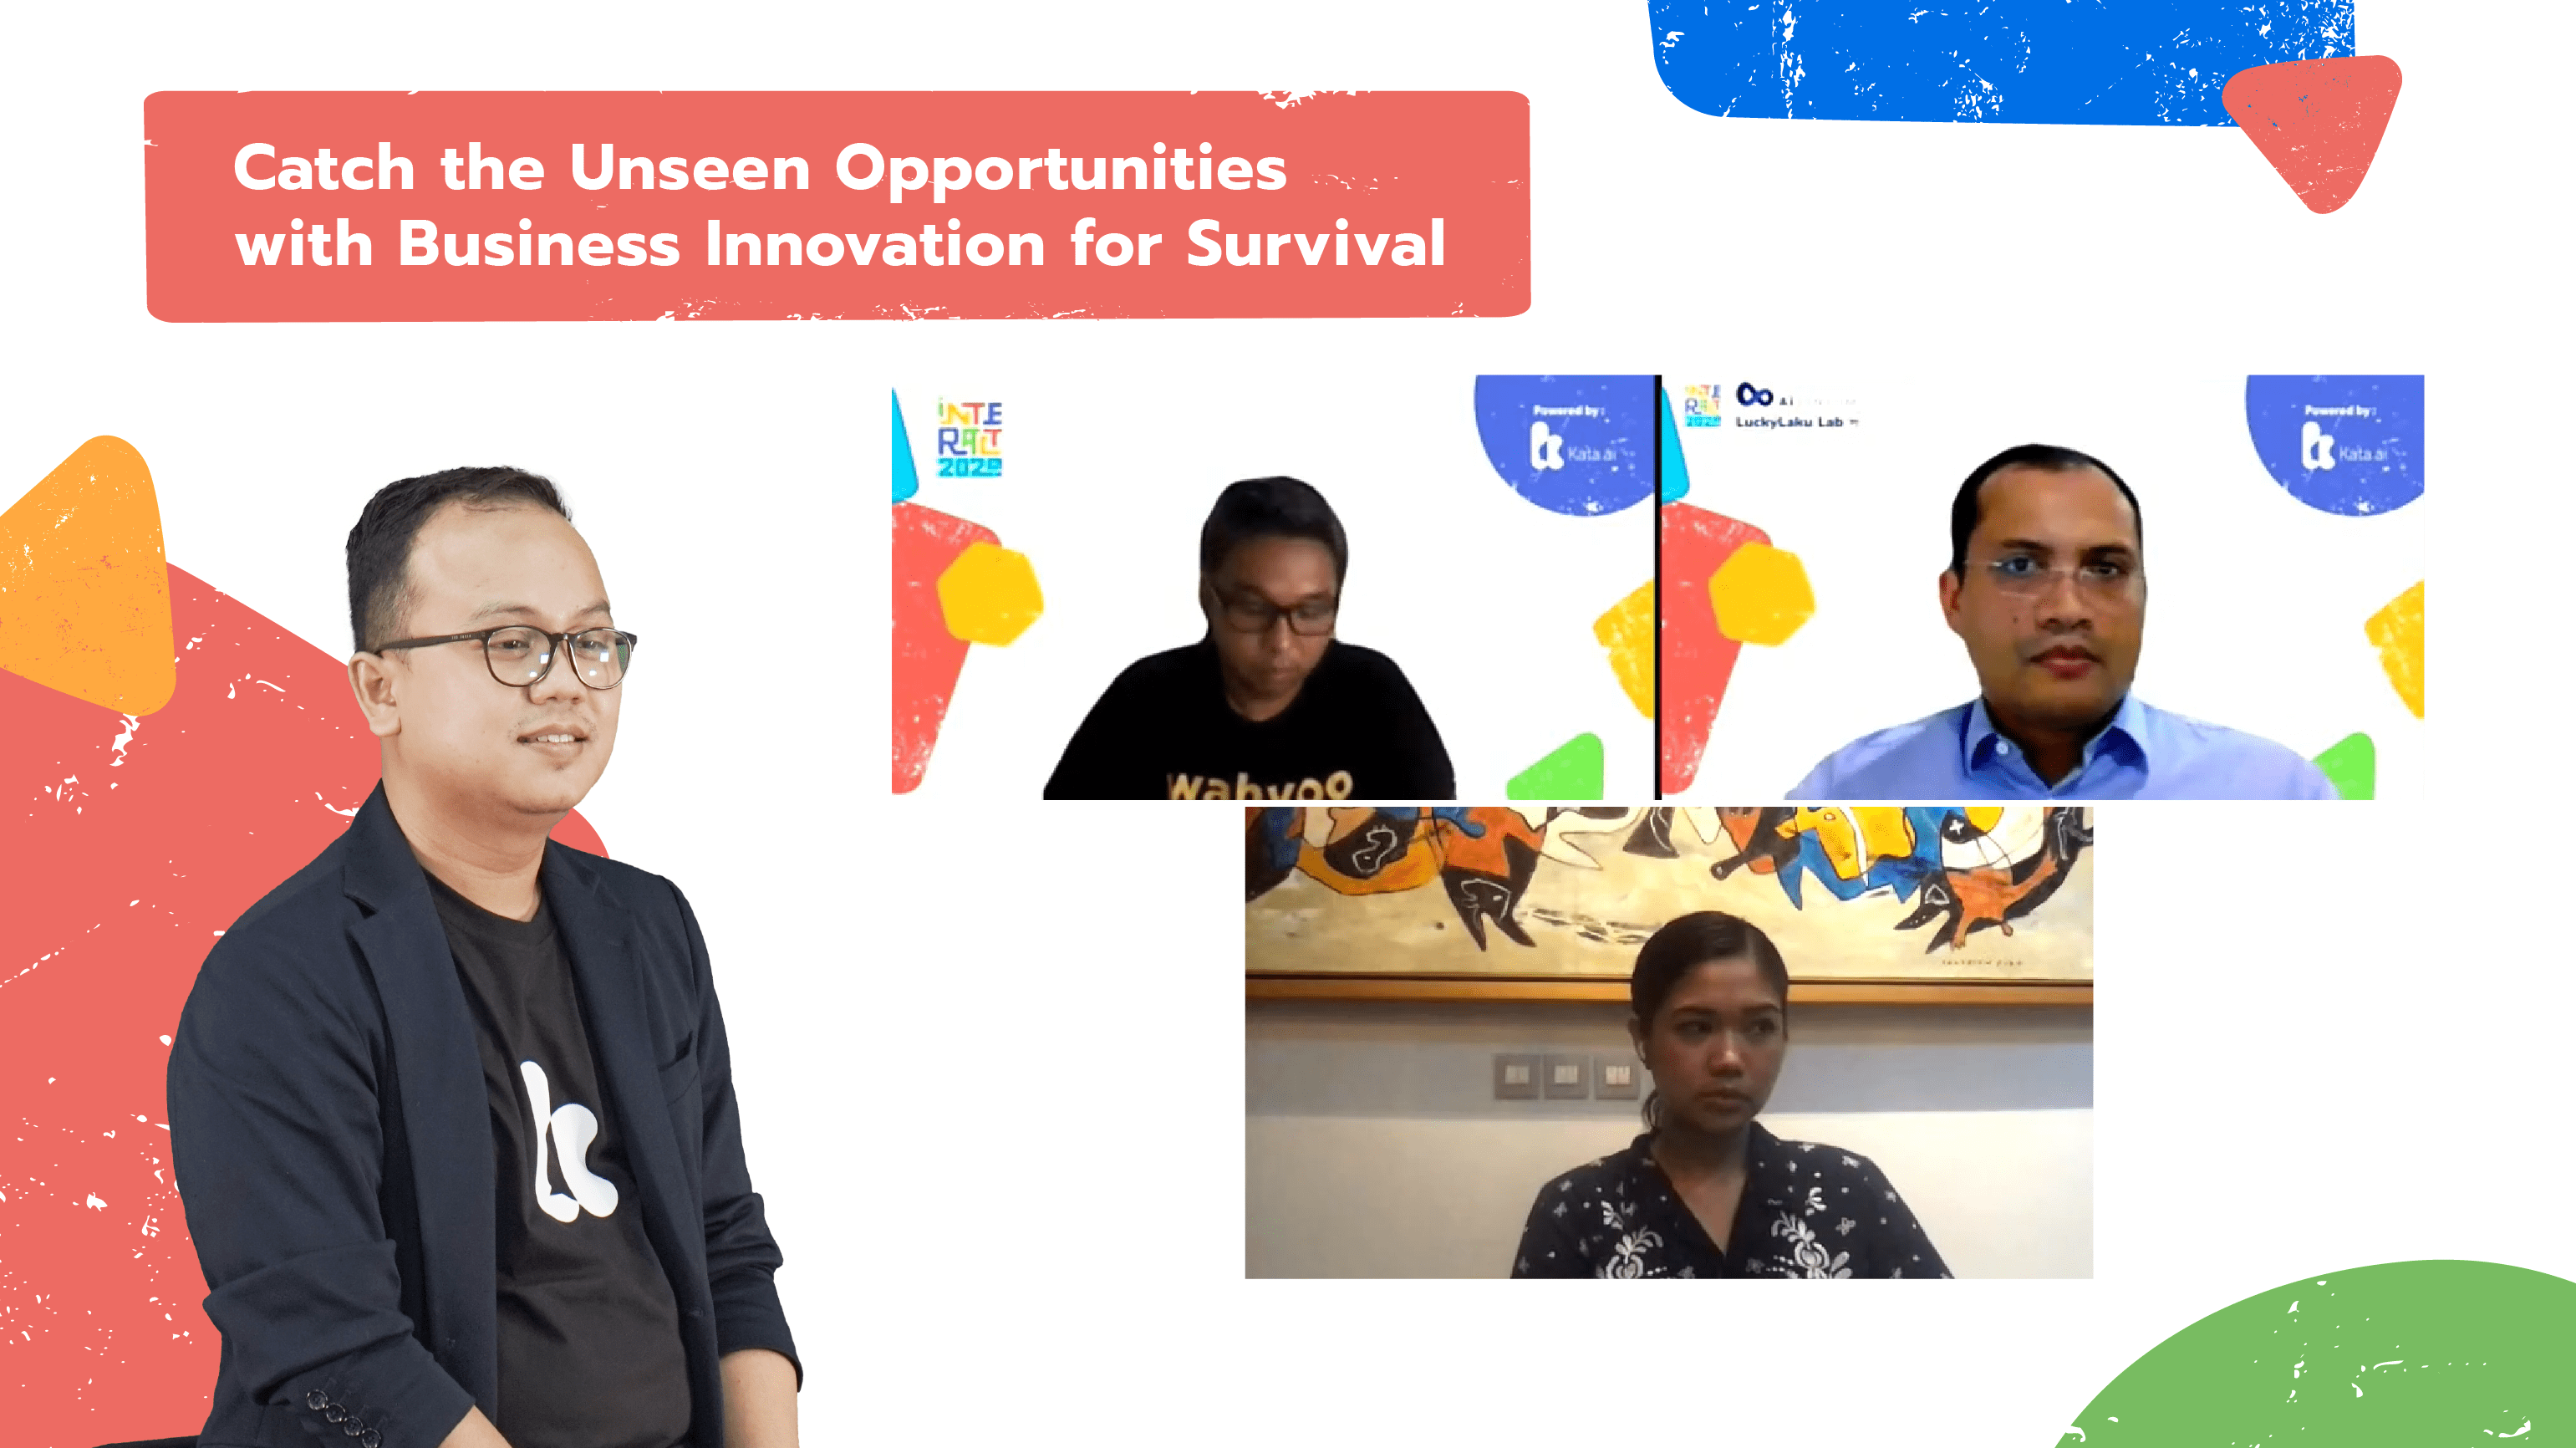 Interact 2020's last keynote session discussed how business saw unseen opportunities amid 2020's many challenges with Lemonilo Co-CEO Shinta Nurfauzia, Wahyoo COO Daniel Cahyadi, and Viviek Thomas from AiSensum